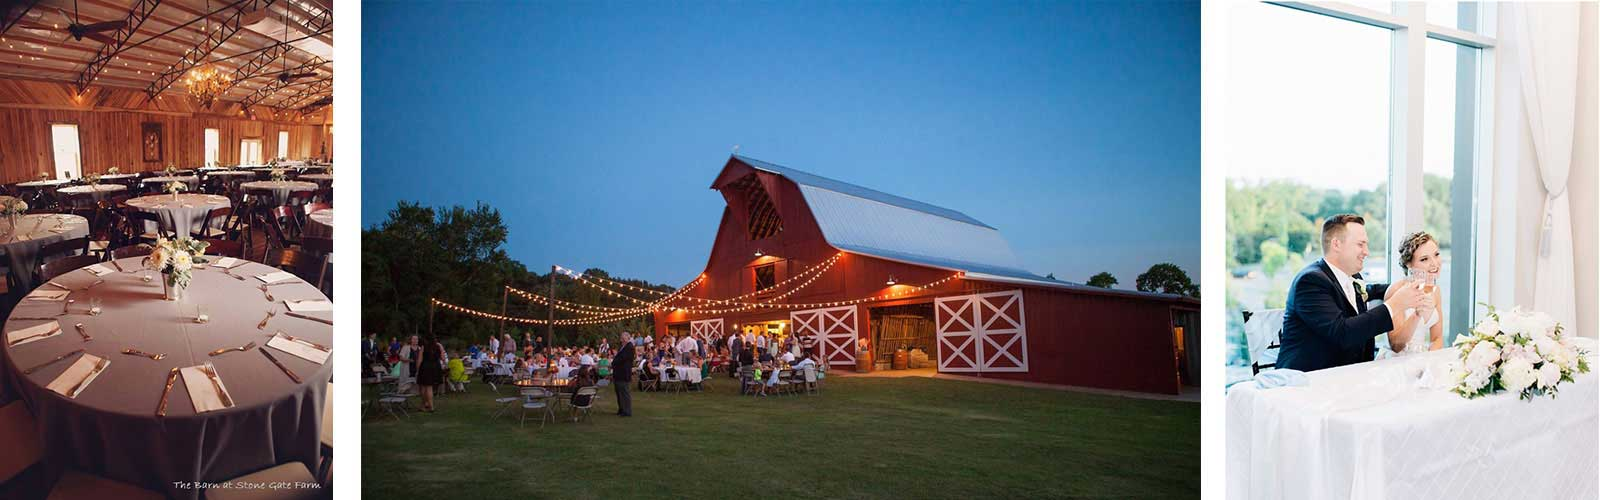 Wedding rentals in Middle Tennessee